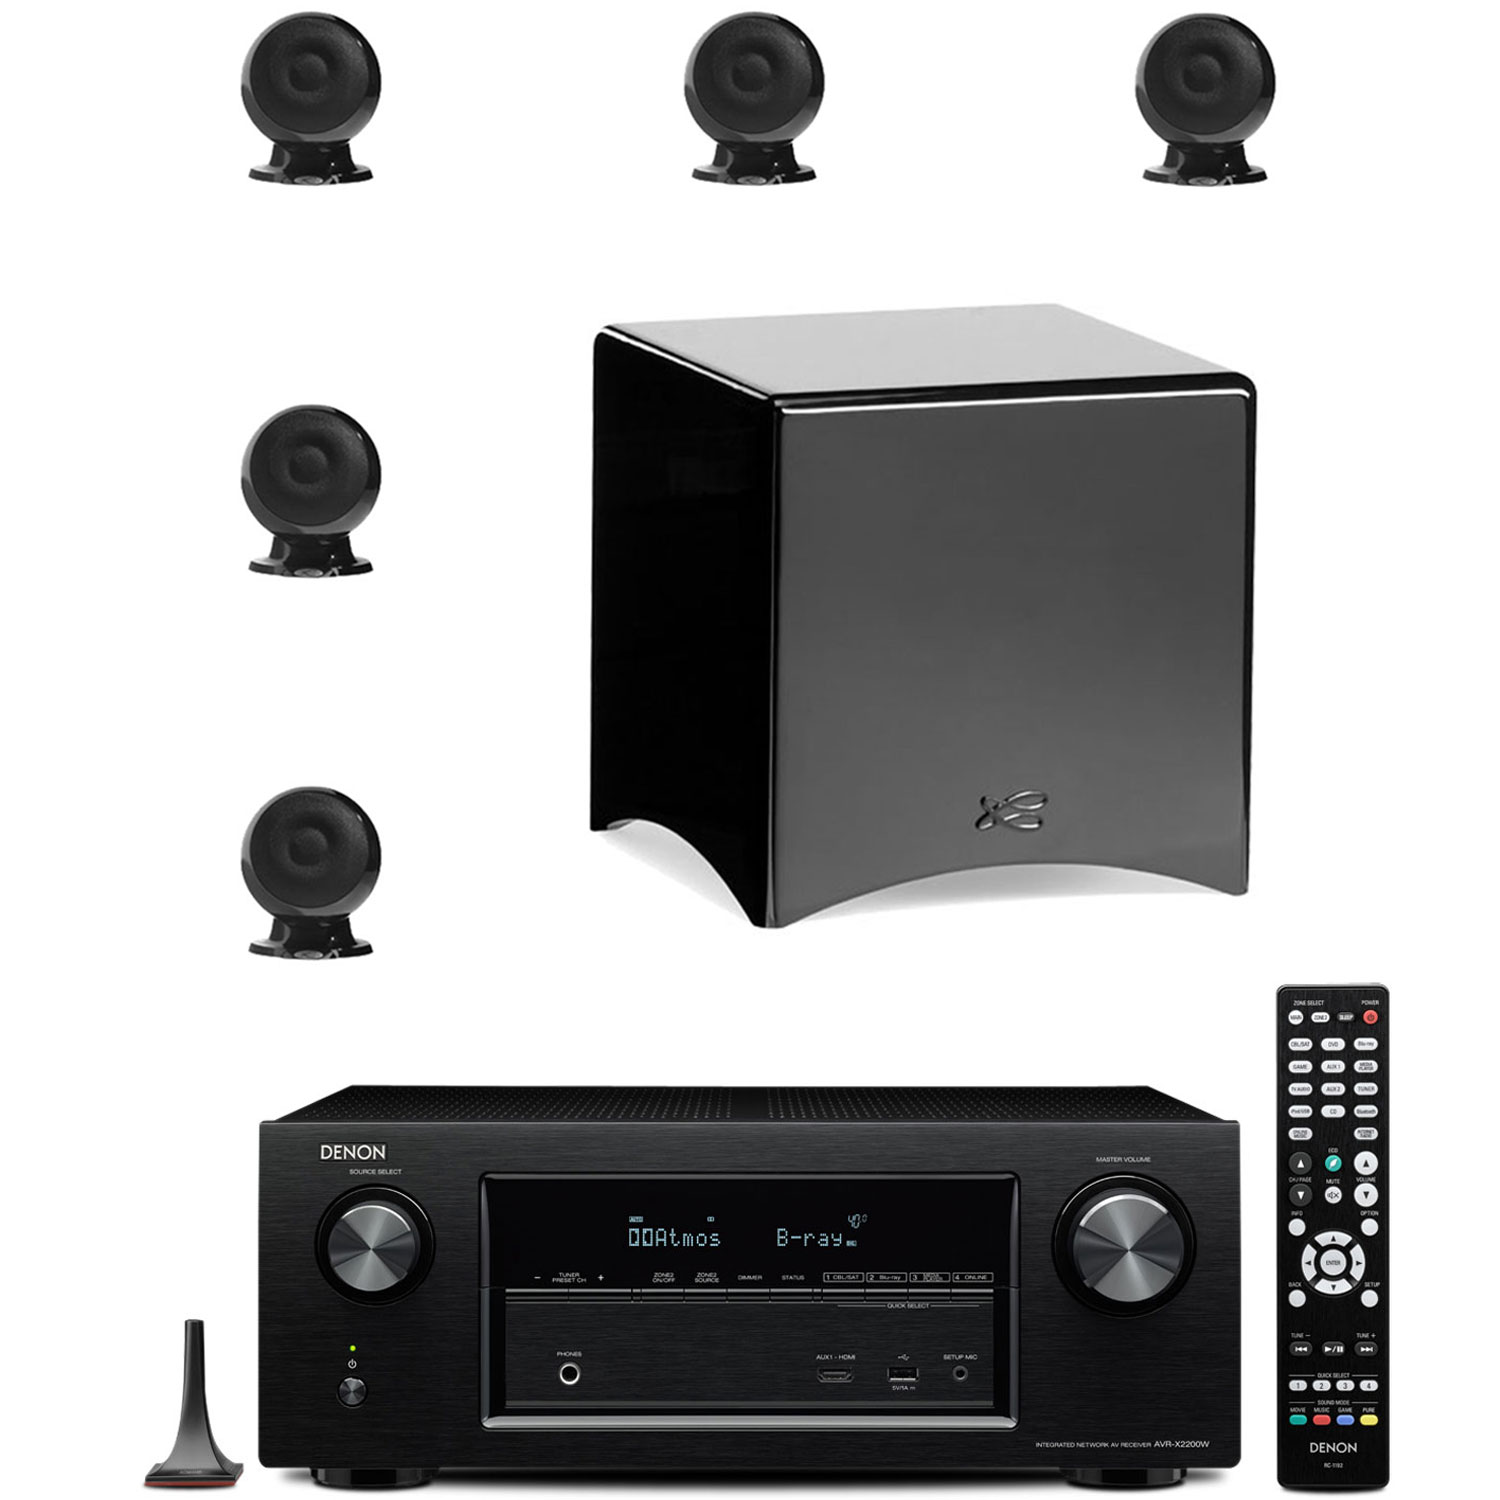 Denon avr x2200w noir cabasse pack eole 3 5 1 ws noir ensemble home cin m - Ensemble tv home cinema ...